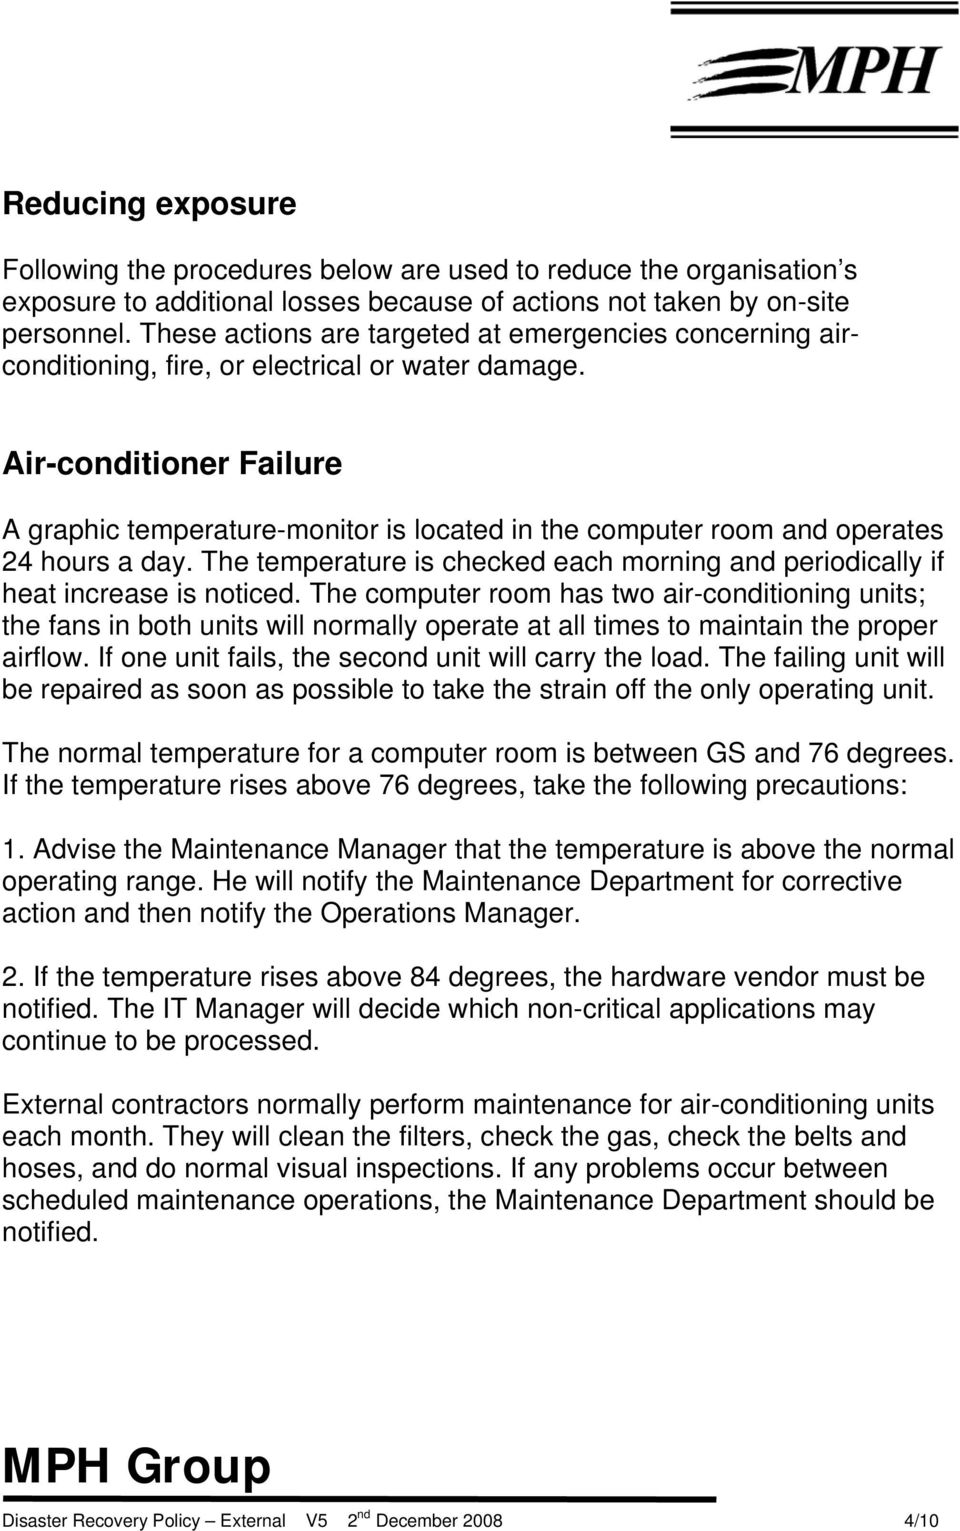 Air-conditioner Failure A graphic temperature-monitor is located in the computer room and operates 24 hours a day. The temperature is checked each morning and periodically if heat increase is noticed.